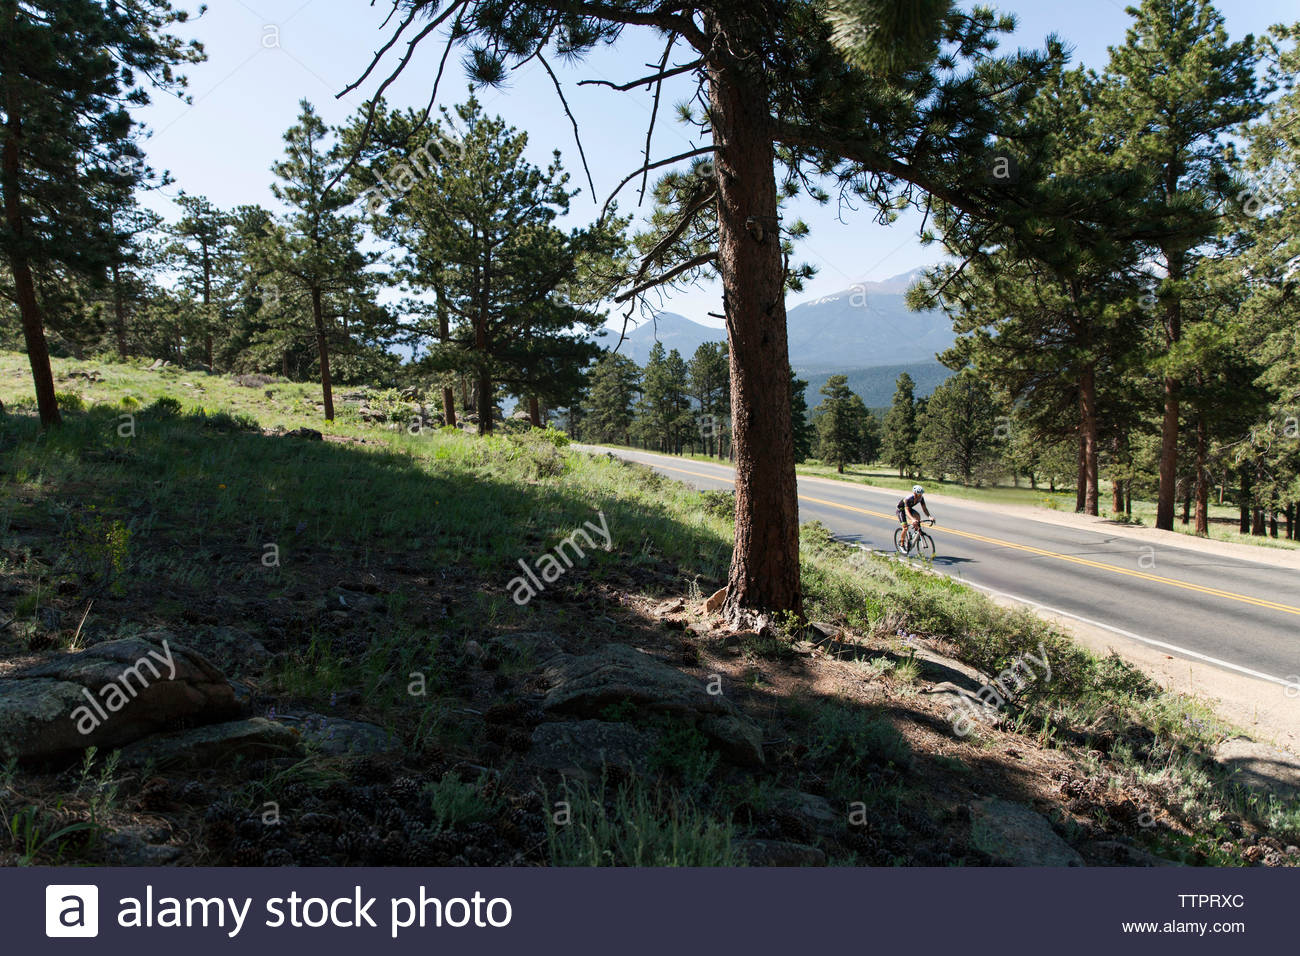 High angle view of man cycling on country road at Estes Park during sunny day - Stock Image